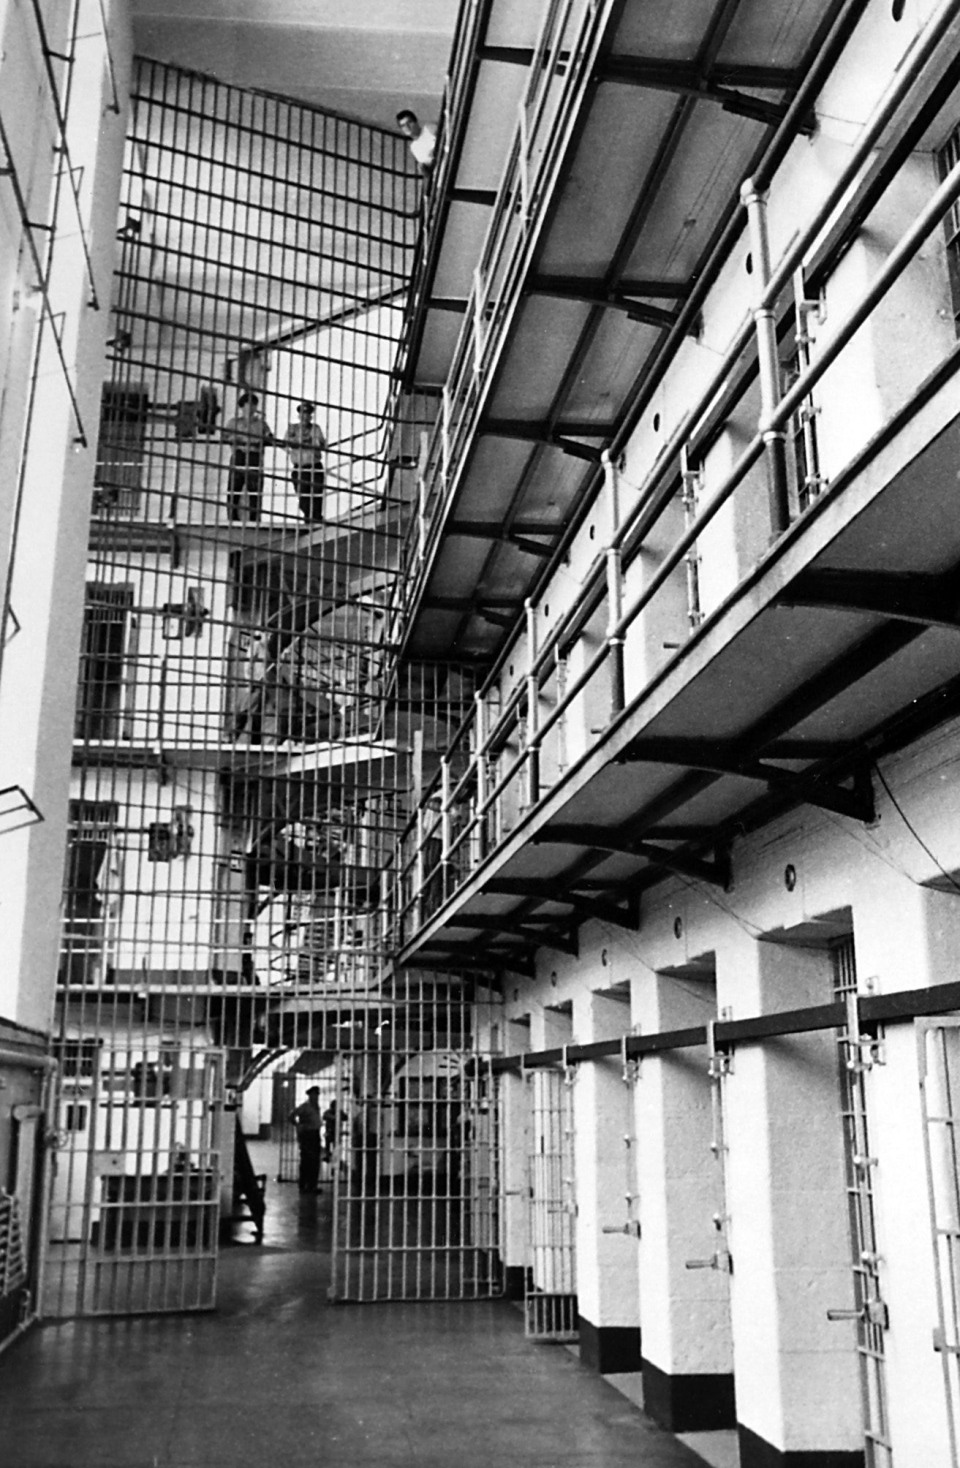 The cell block at Kingston Penitentiary is pictured on Sept. 10, 1969 file photo. (Chuck Mitchell/The Canadian Press)